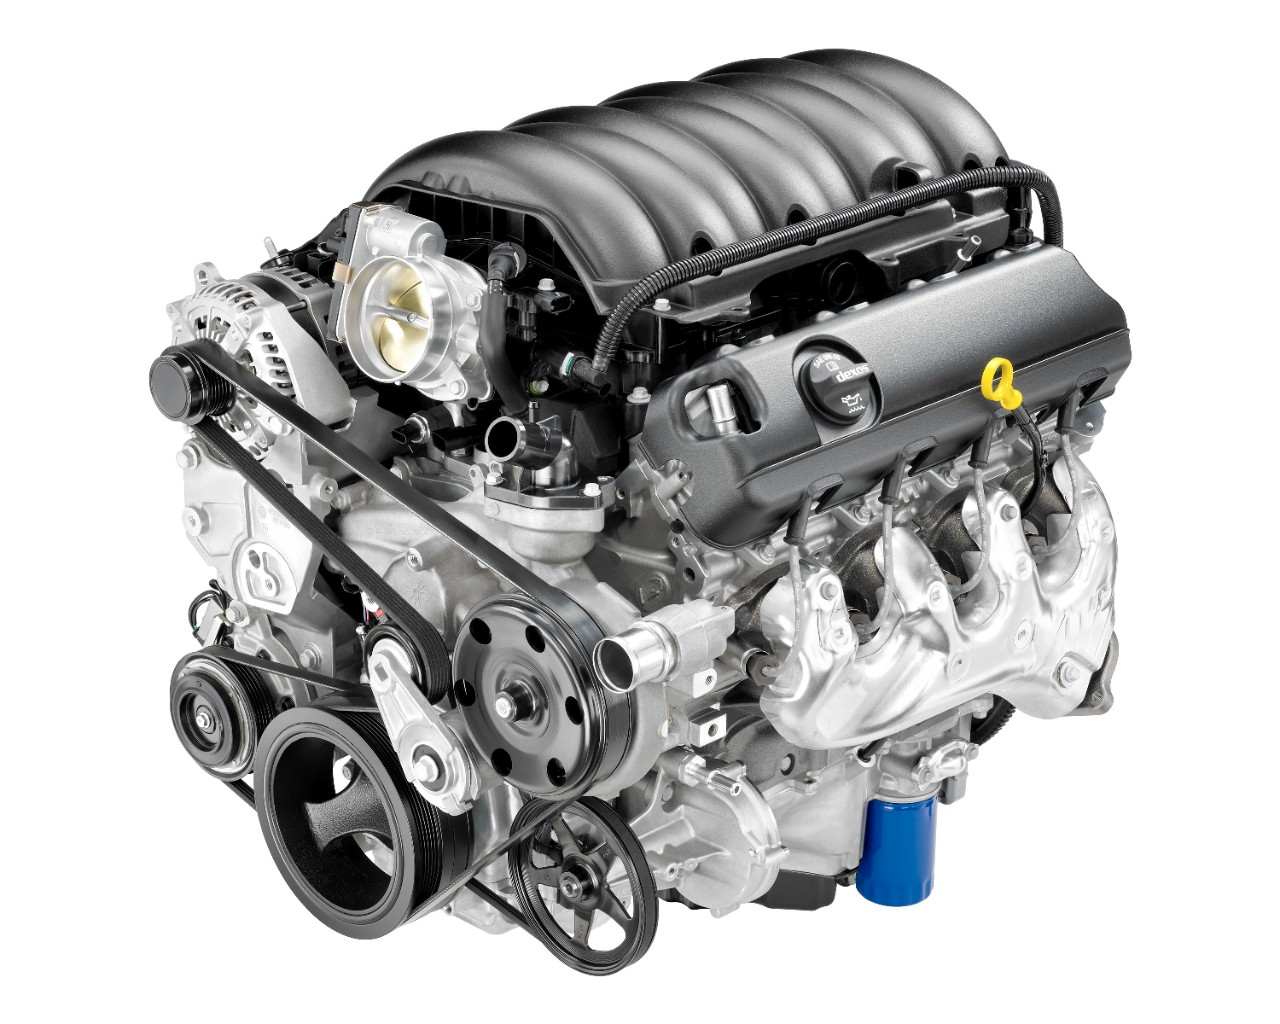 gm 6 2 liter v8 ecotec3 l86 engine info power specs